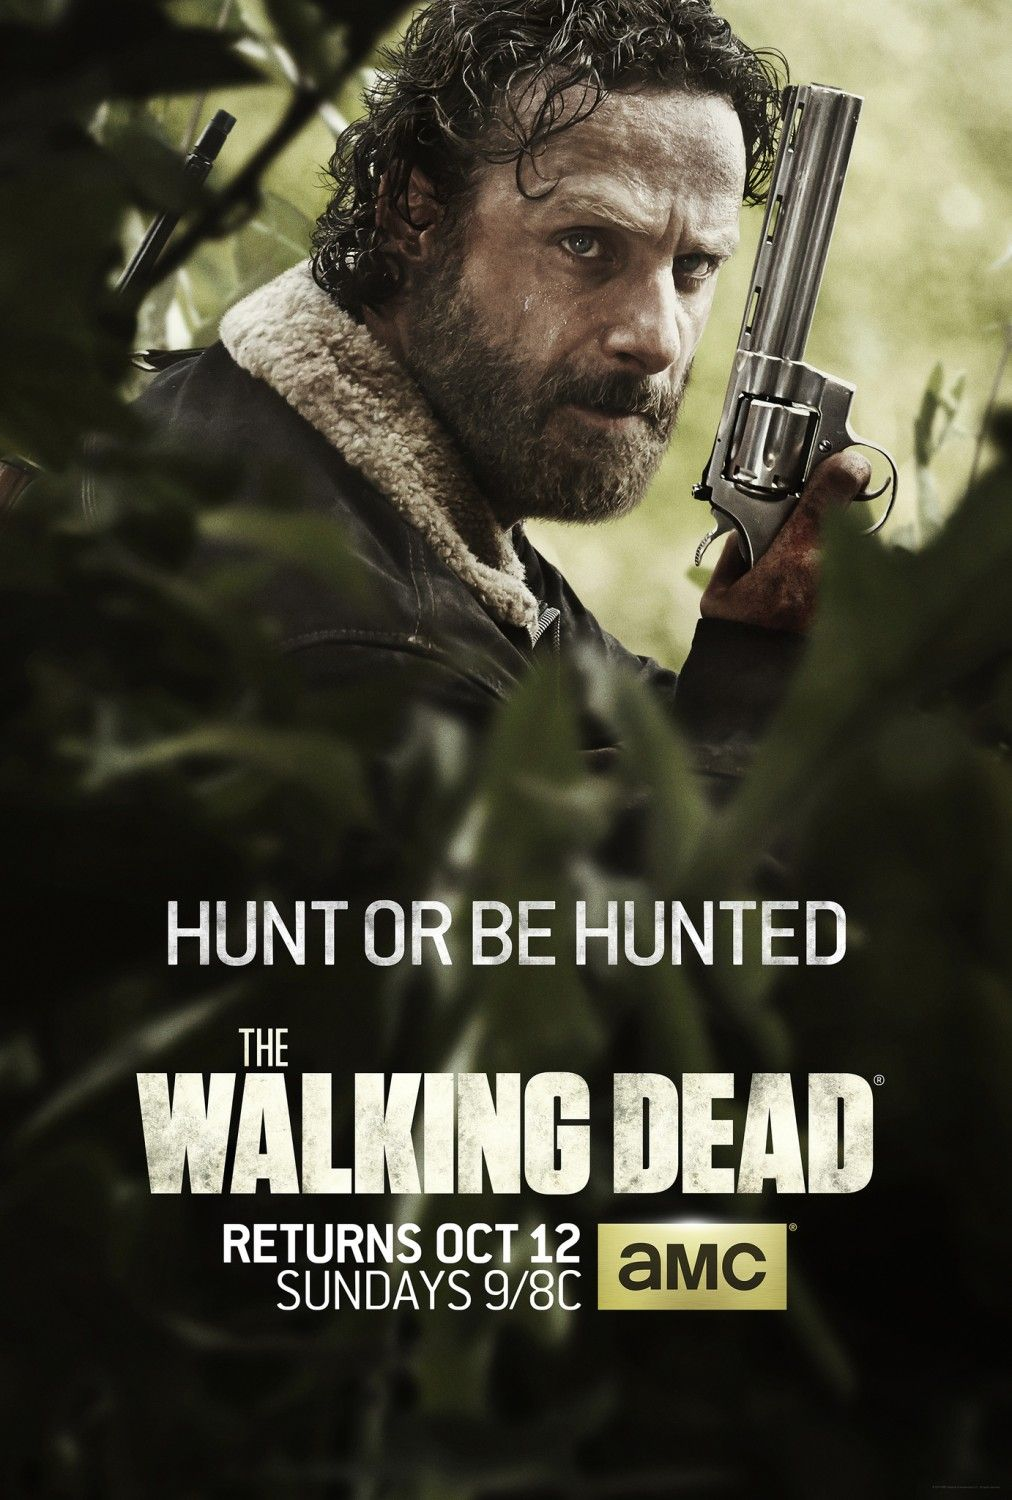 Negan The Walking Dead Maxi Poster 61cm x 91.5cm new and sealed